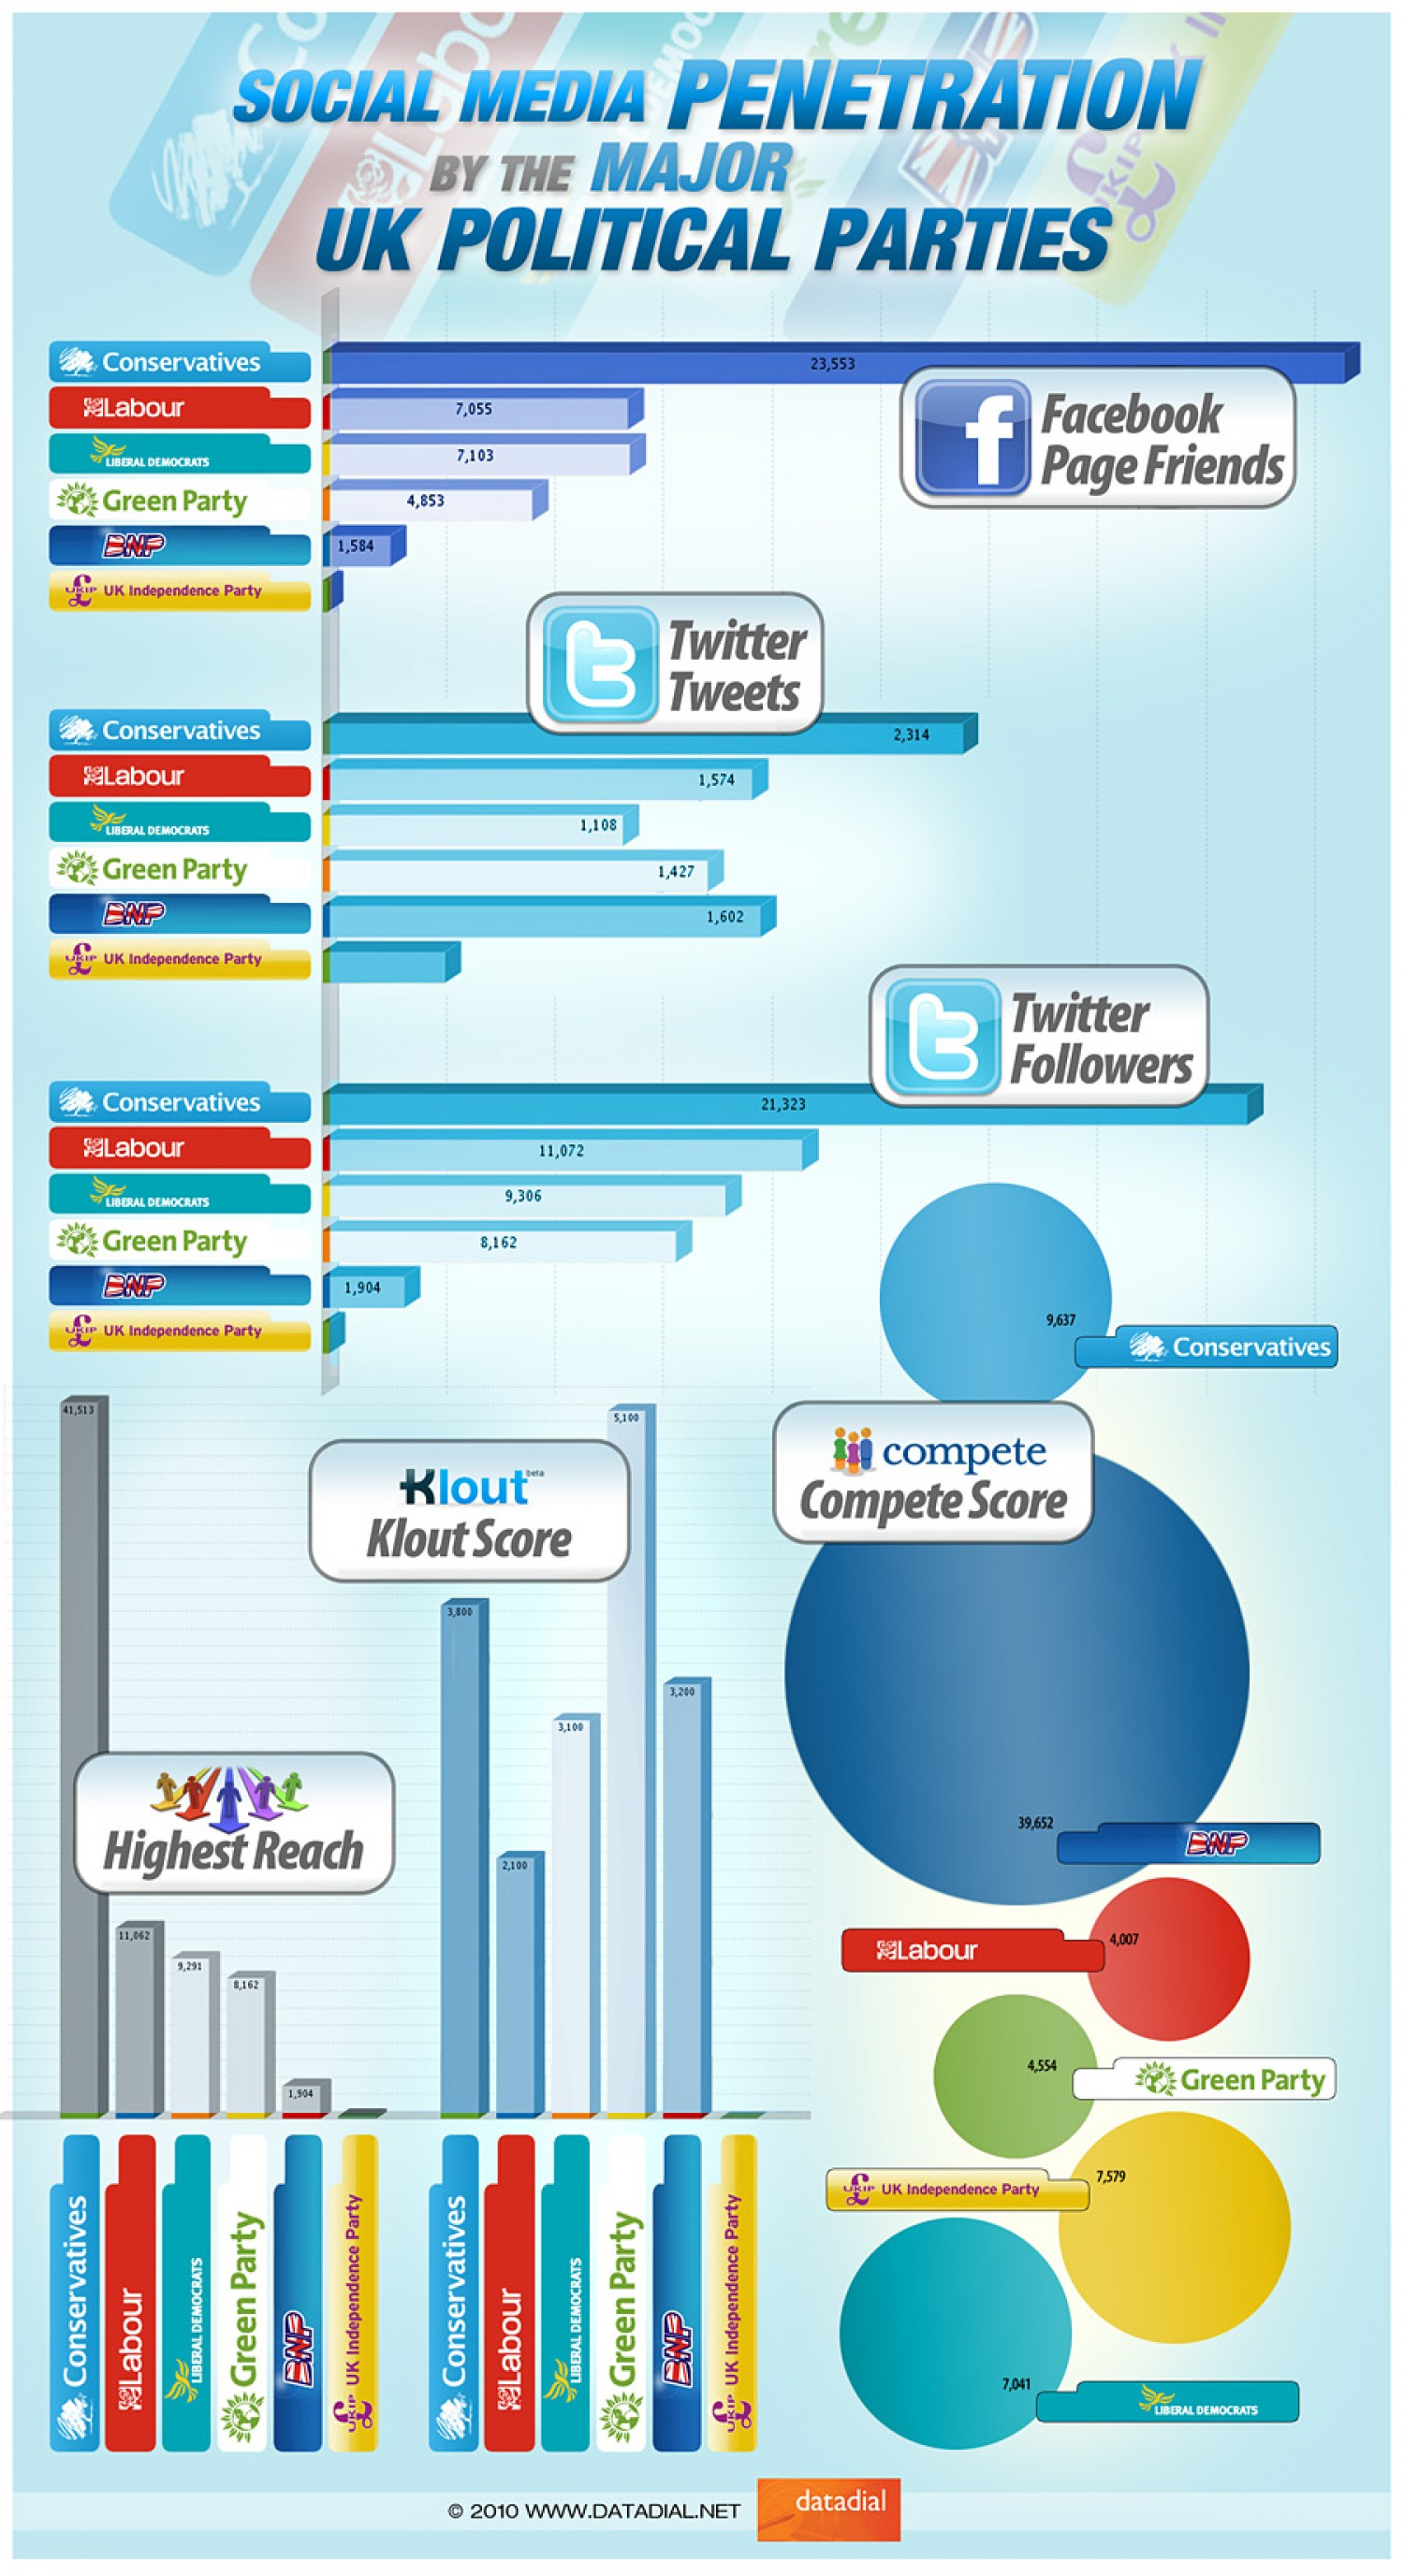 The Social Media Penetration of the Major UK Political Parties